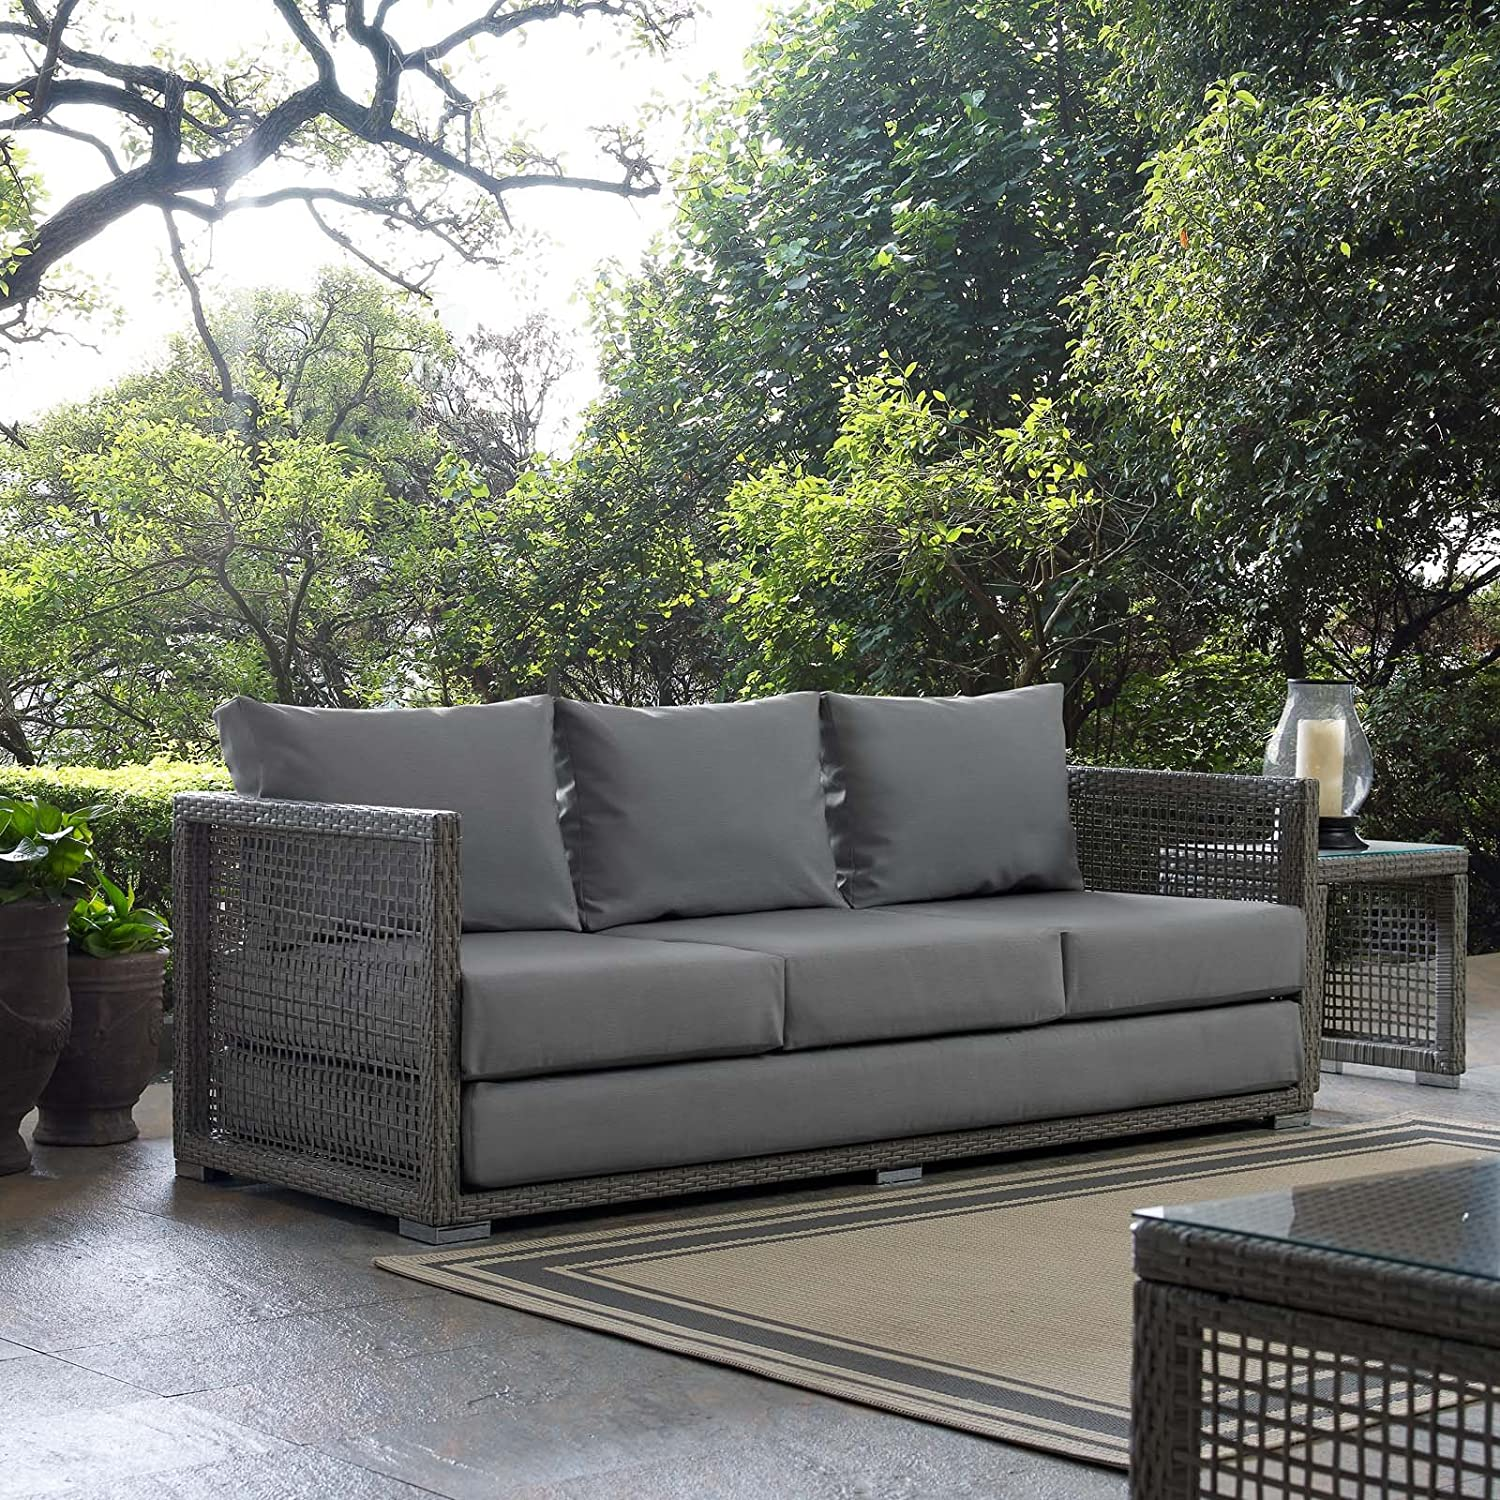 Modway EEI-2923-GRY-GRY Aura Outdoor Patio Wicker Rattan Sofa Gray